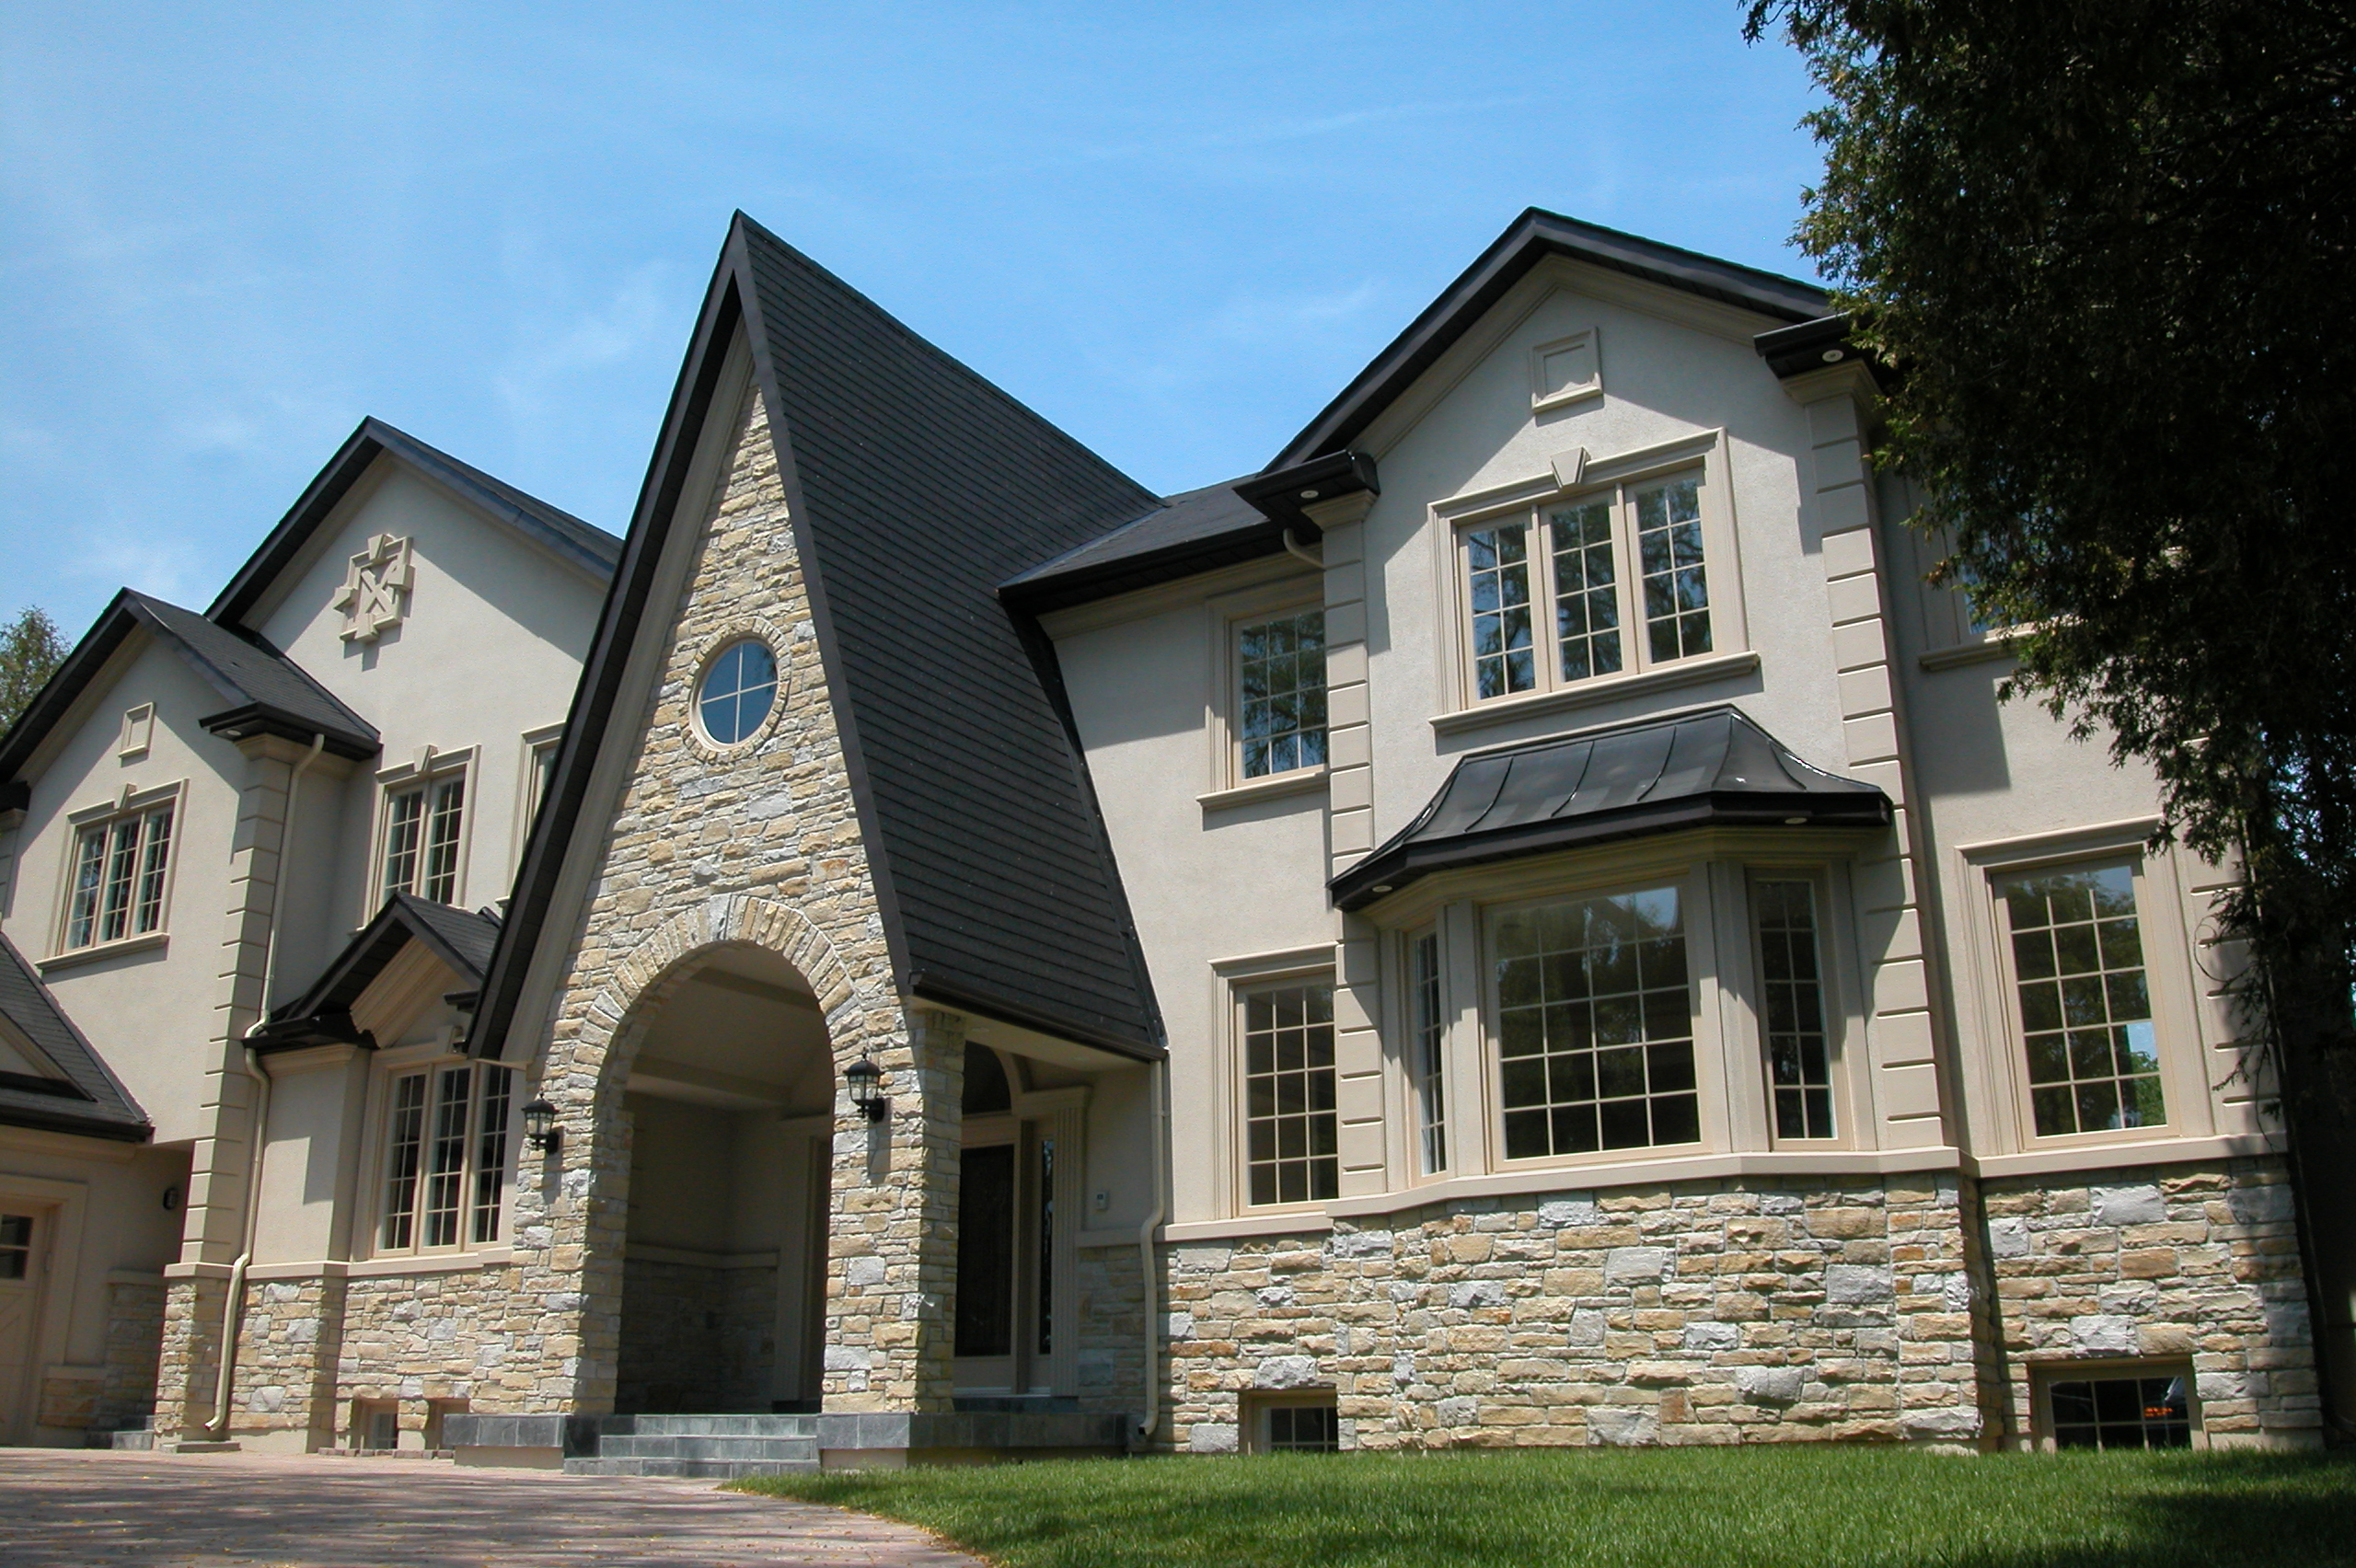 6 atlantis exterior on pinterest james hardie stone for Exterior home design stone